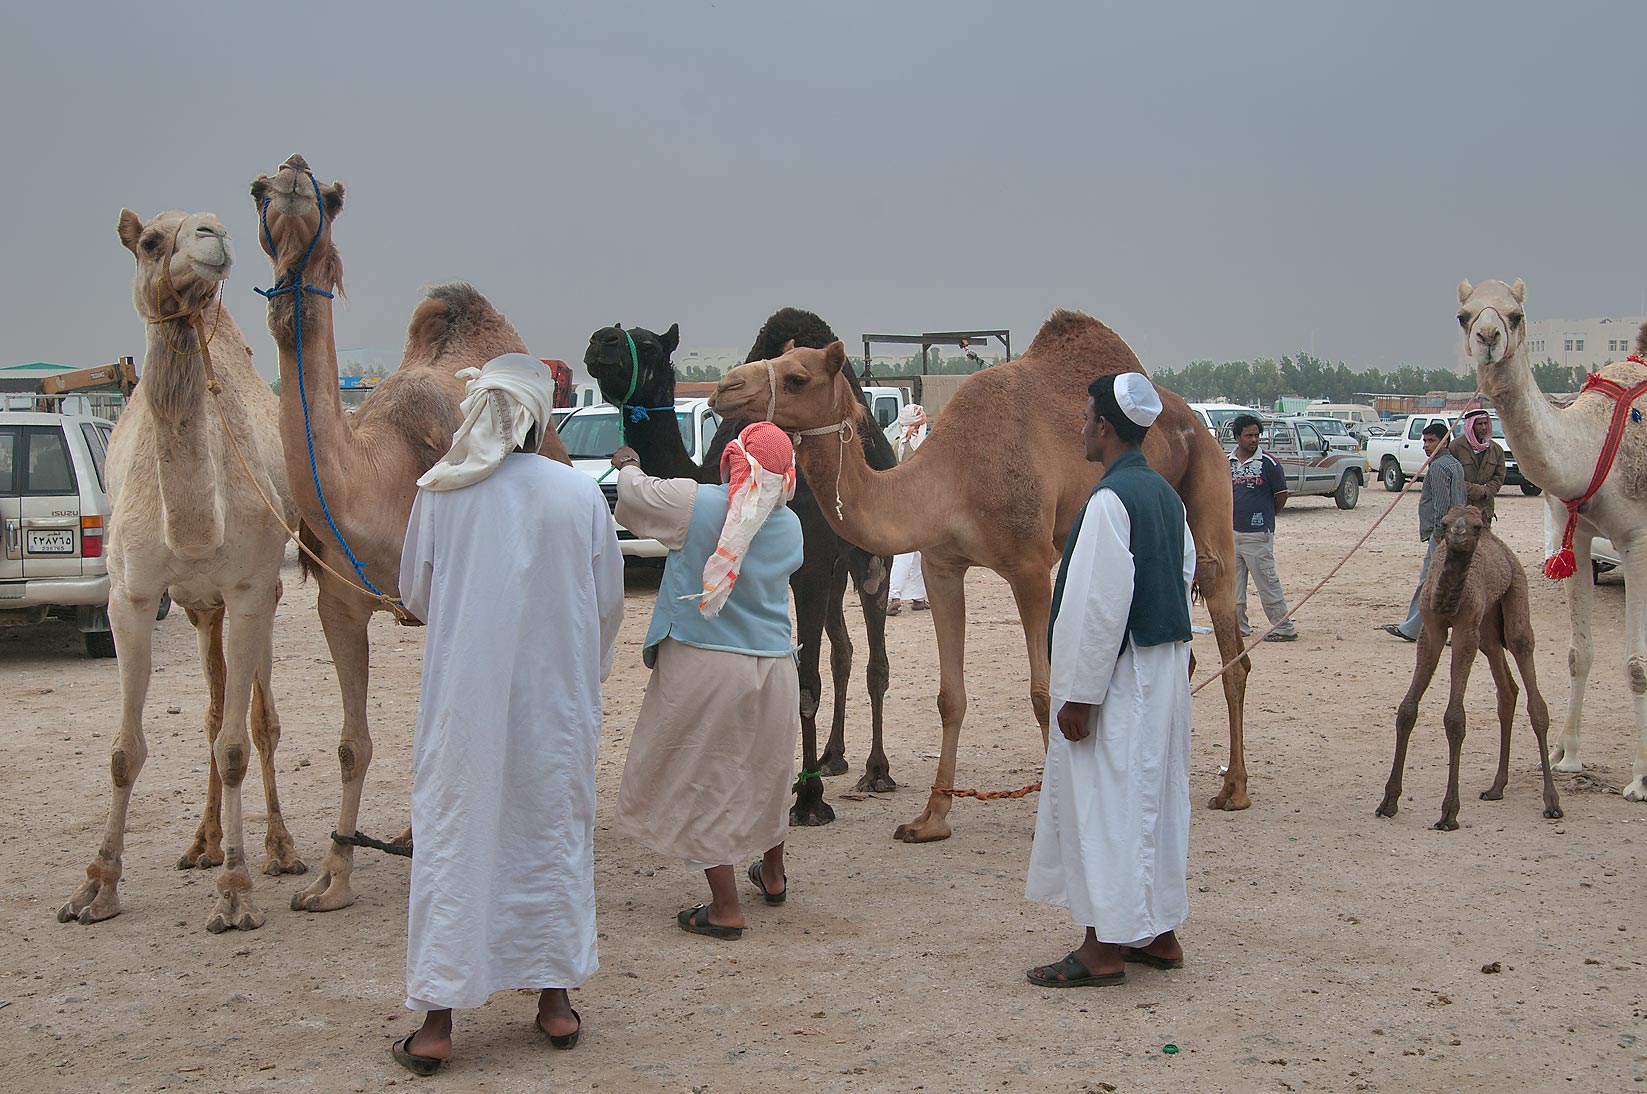 Group of camels in Camel Market (Souq), racing section. Doha, Qatar